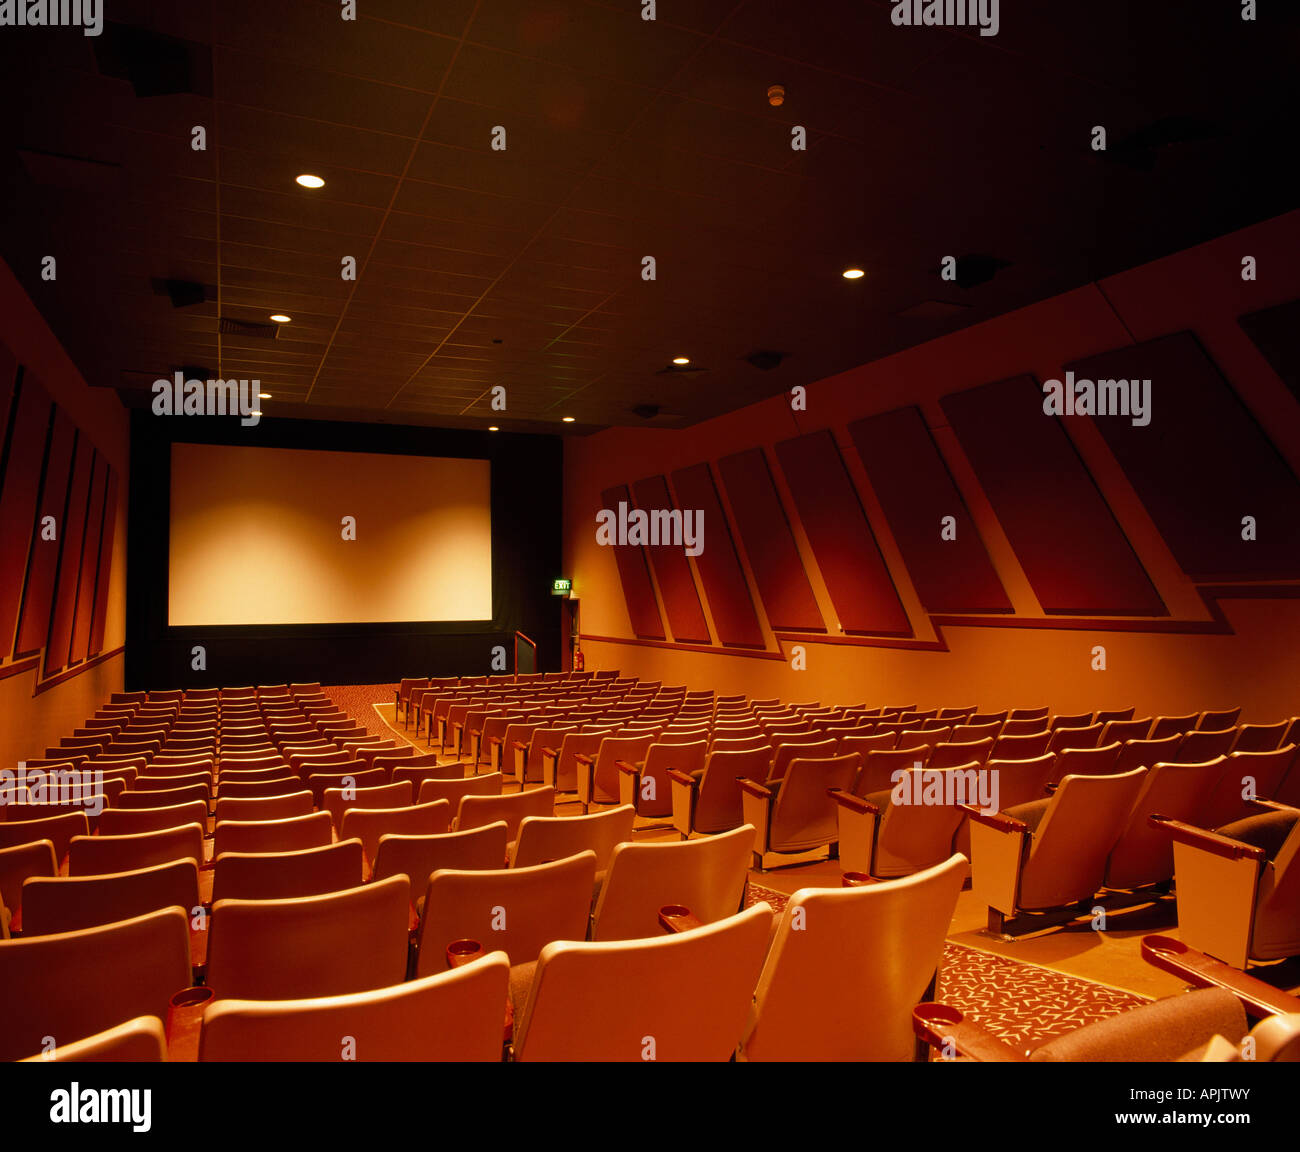 Cinema - Stock Image